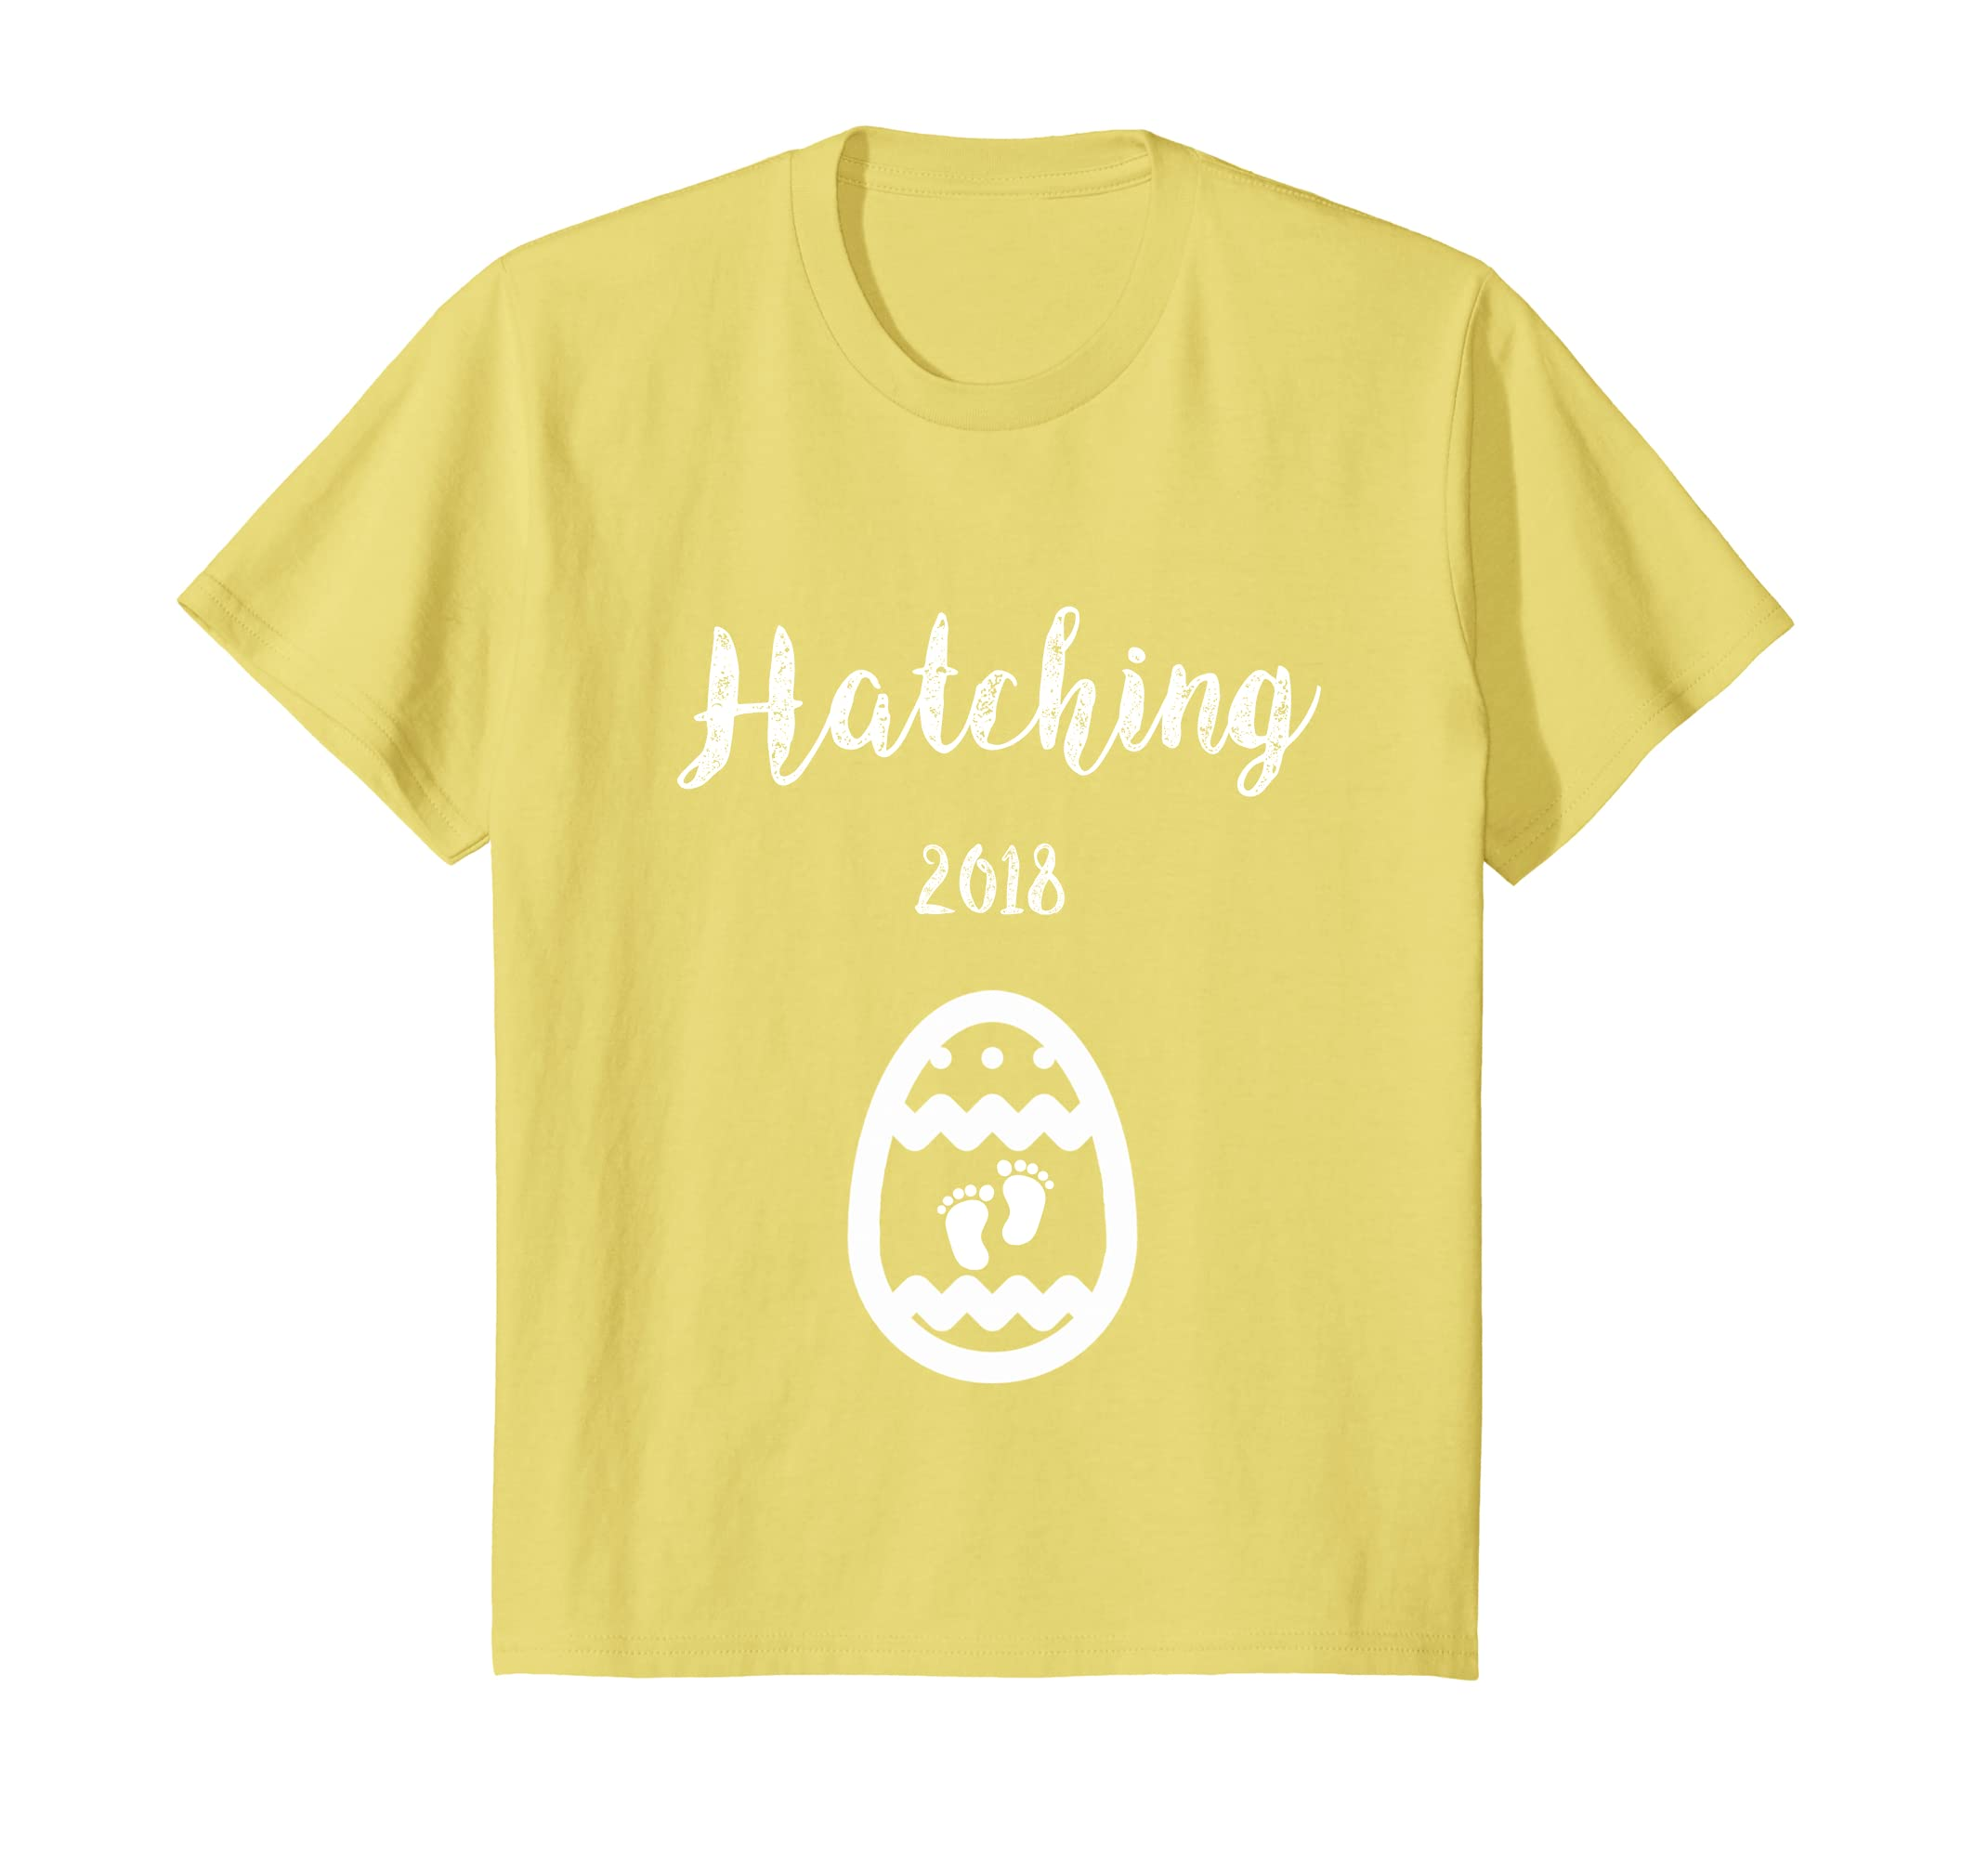 e40bbd0b Amazon.com: Easter Hatching Pregnancy Announcement Shirt - More colors!:  Clothing